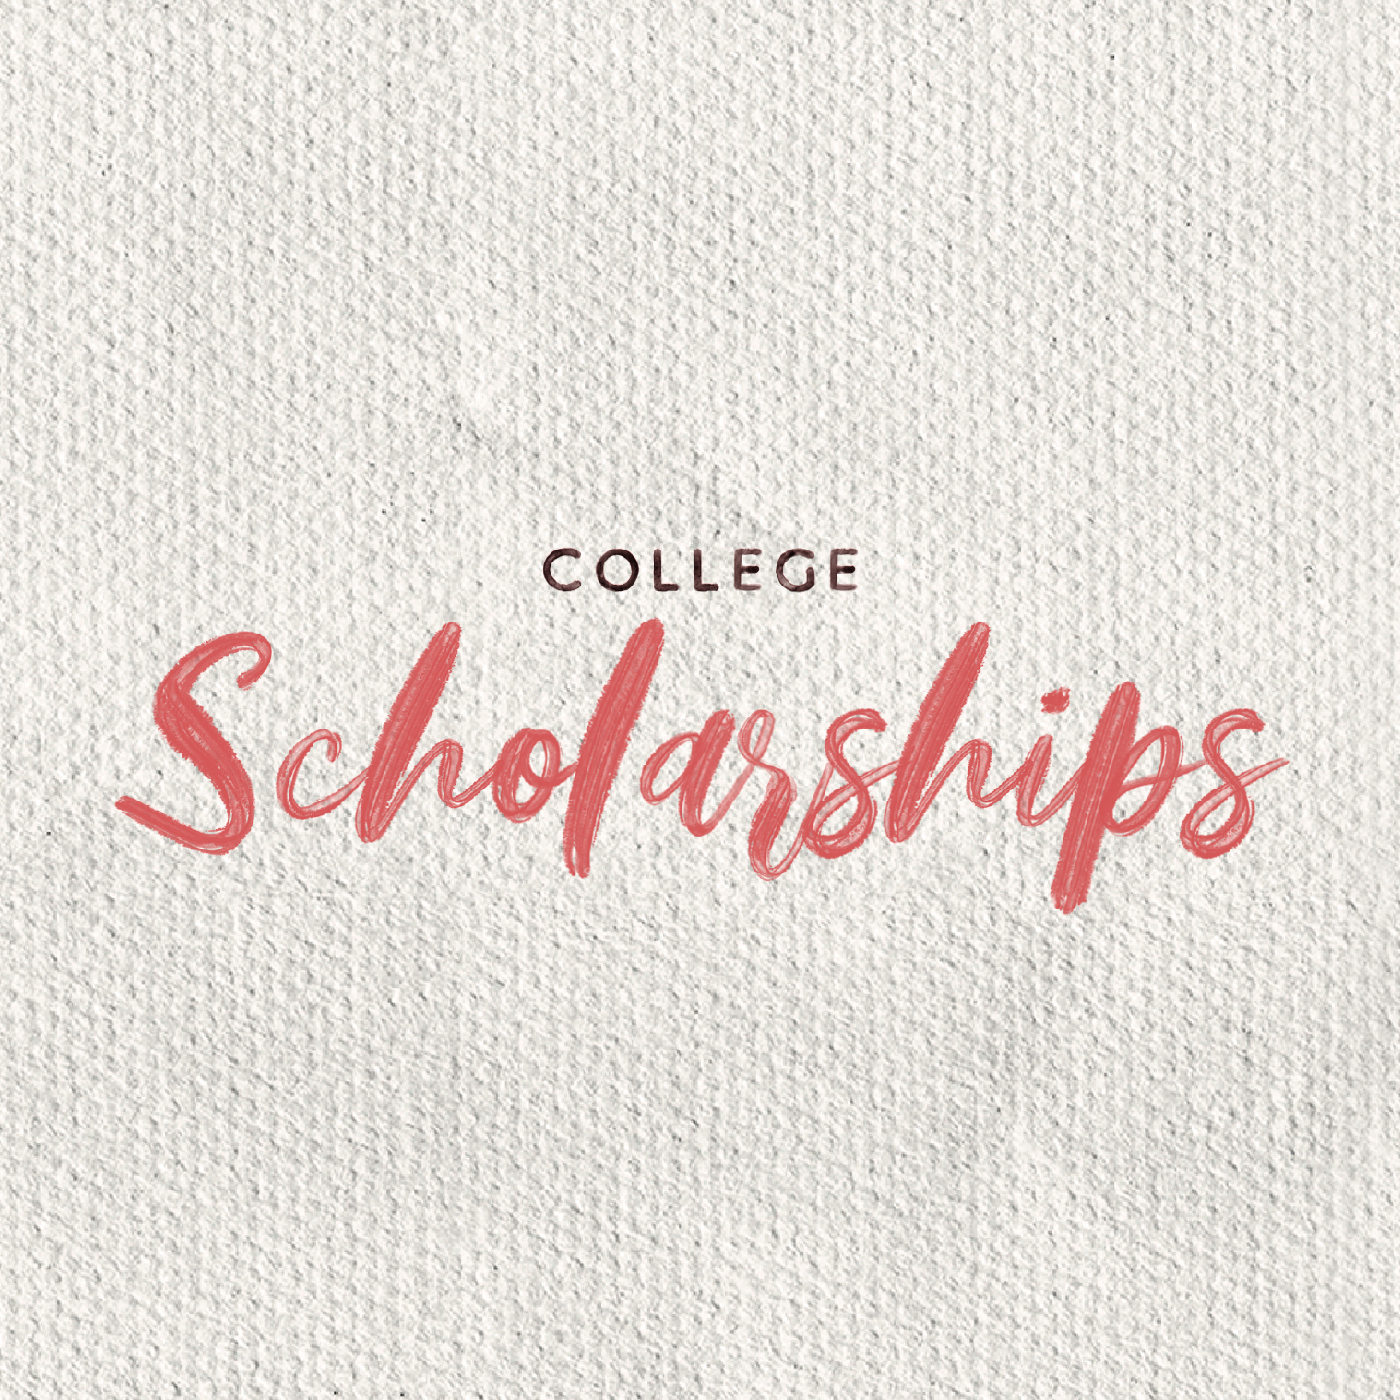 College Scholarships Square Image